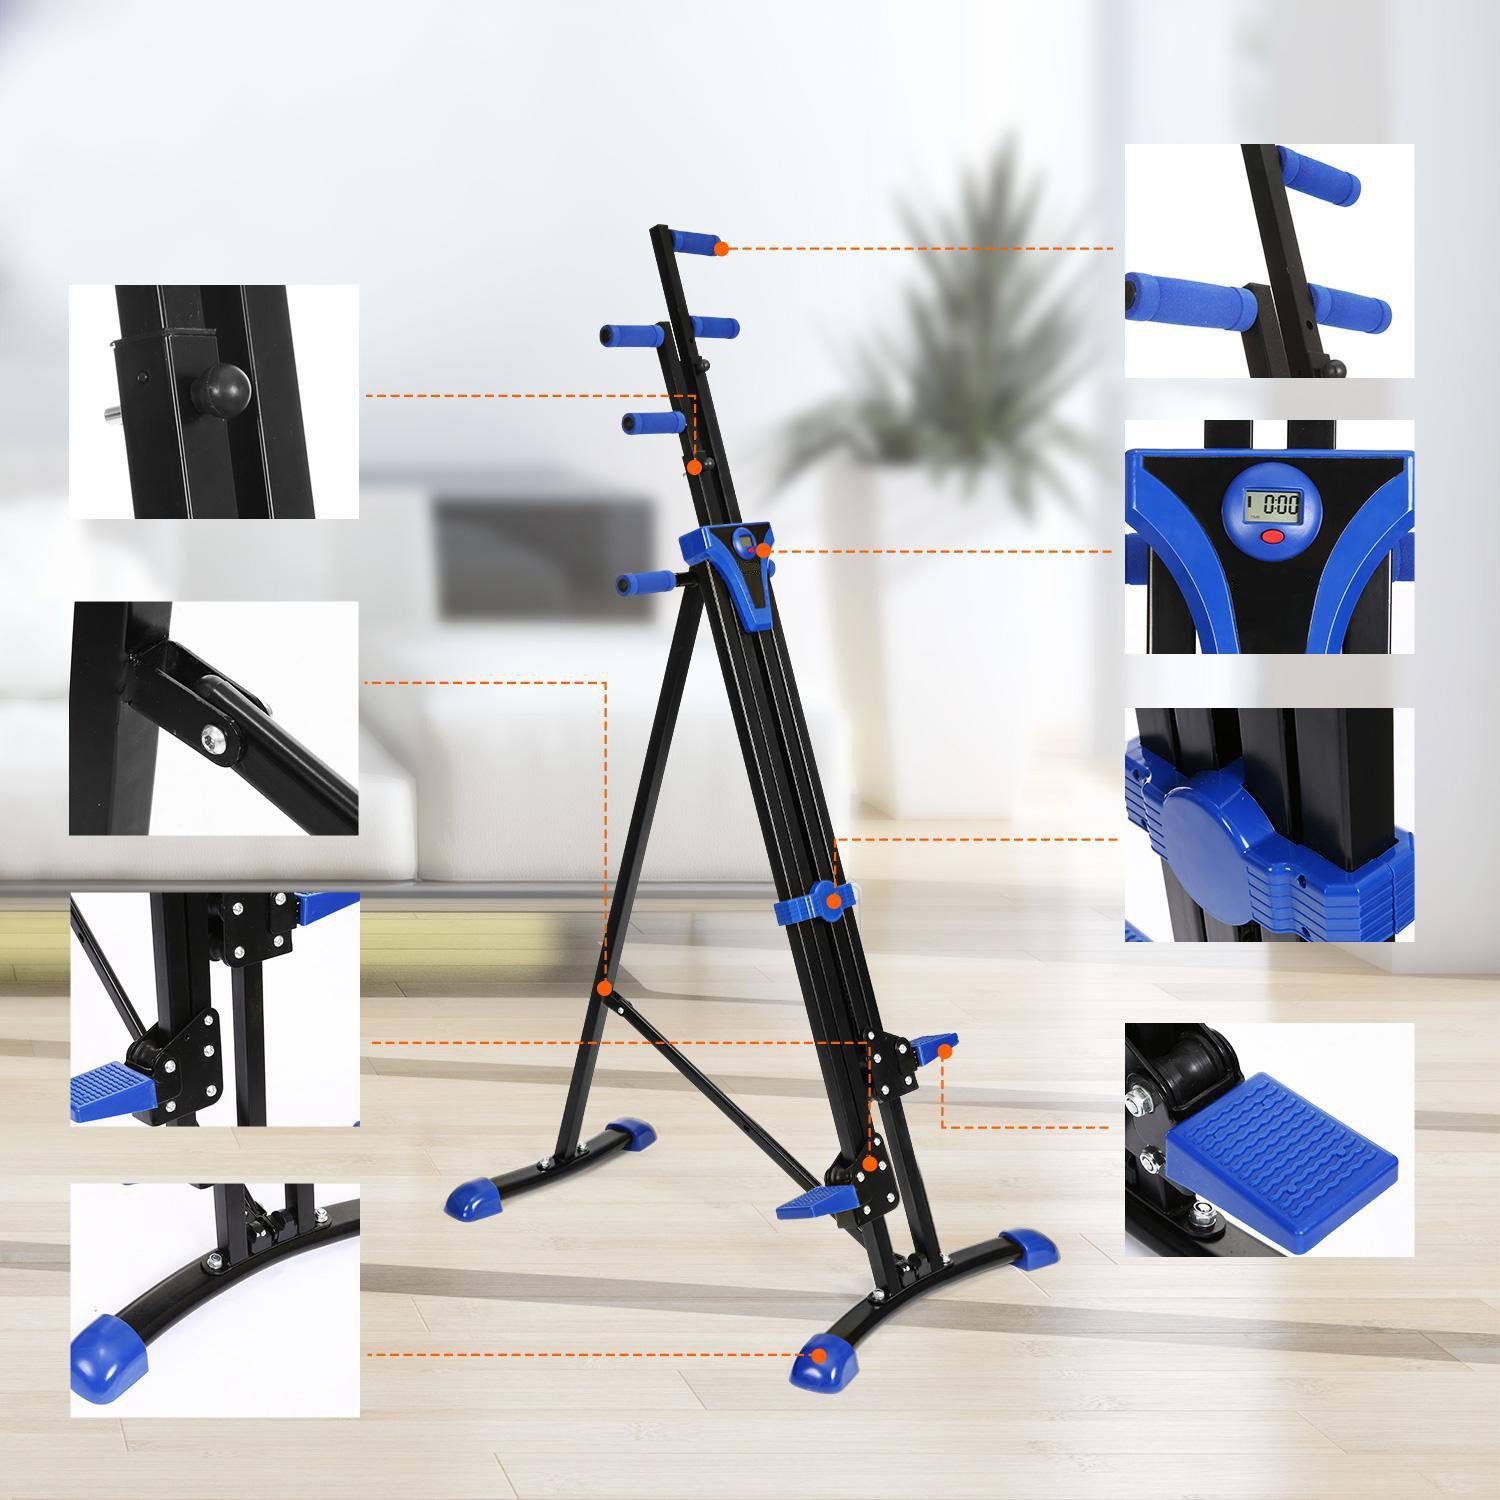 Vertical Mountain Climber Exercise Machine, 2 In 1 Foldable Vertical Stair Step Climber Stepper Exercise Fitness Climbing Machine by Evokem (Image #2)